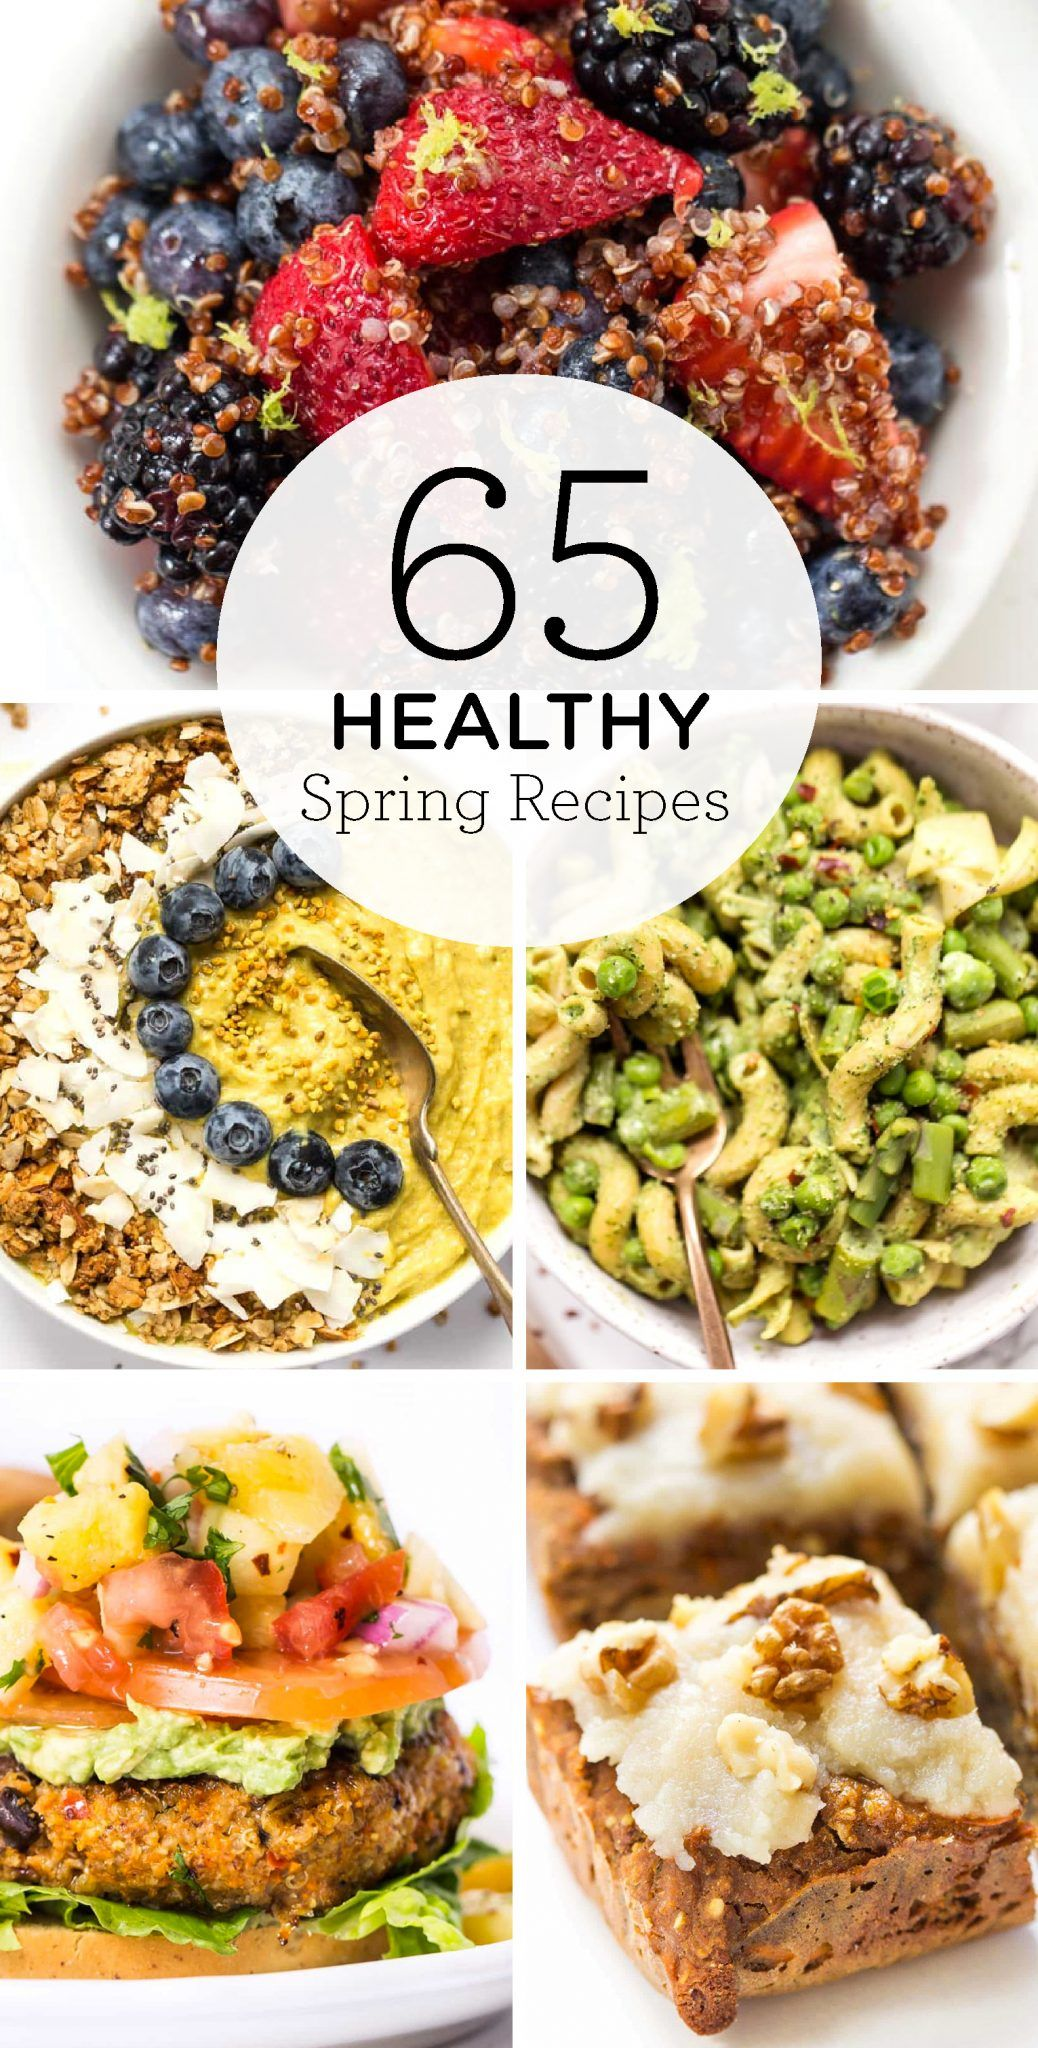 65 Healthy Spring Recipes Clean Eating Recipes Healthy